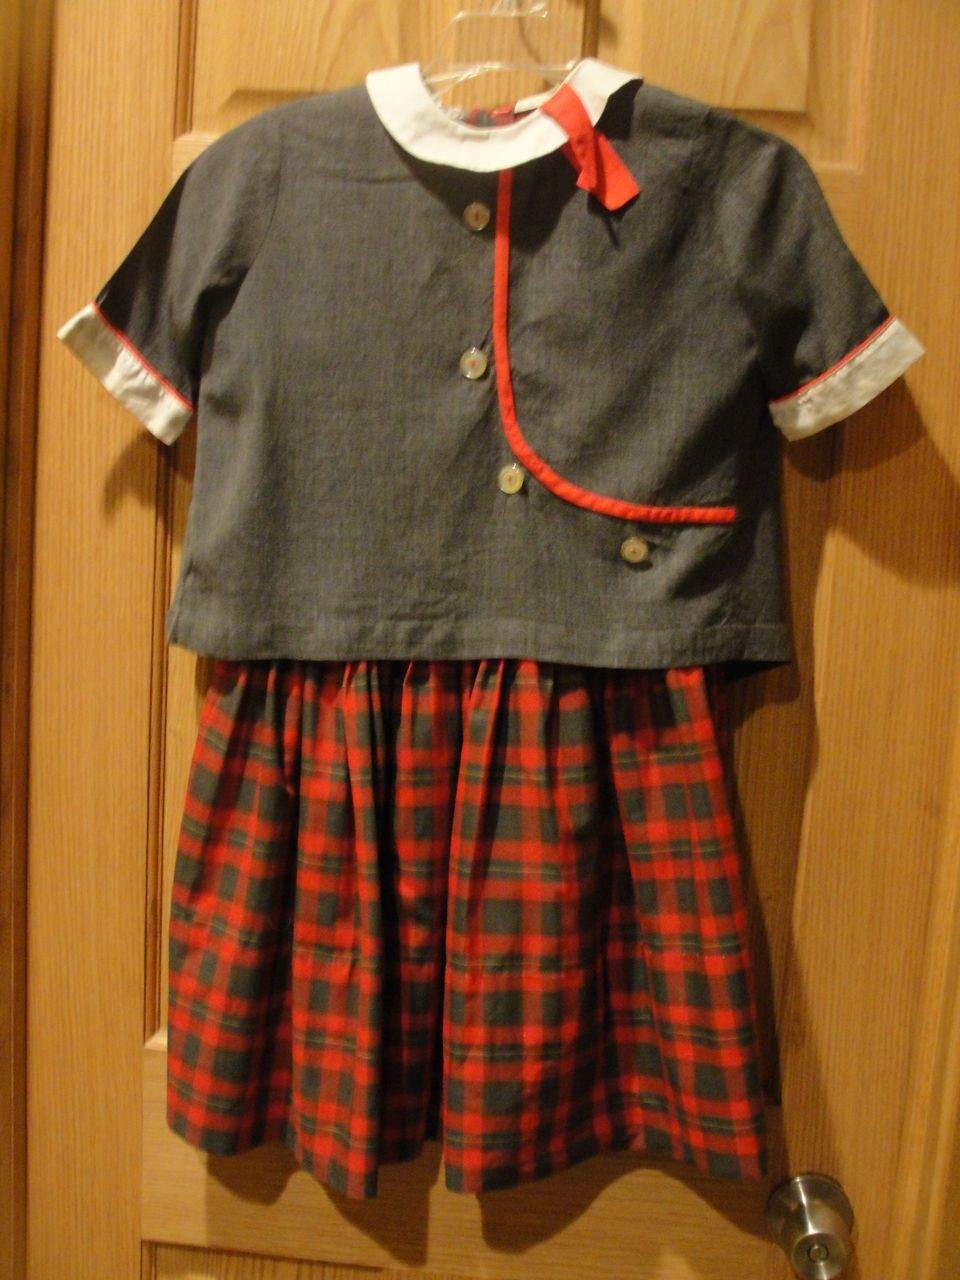 Gray and red plaid little girl s dress with jacket from